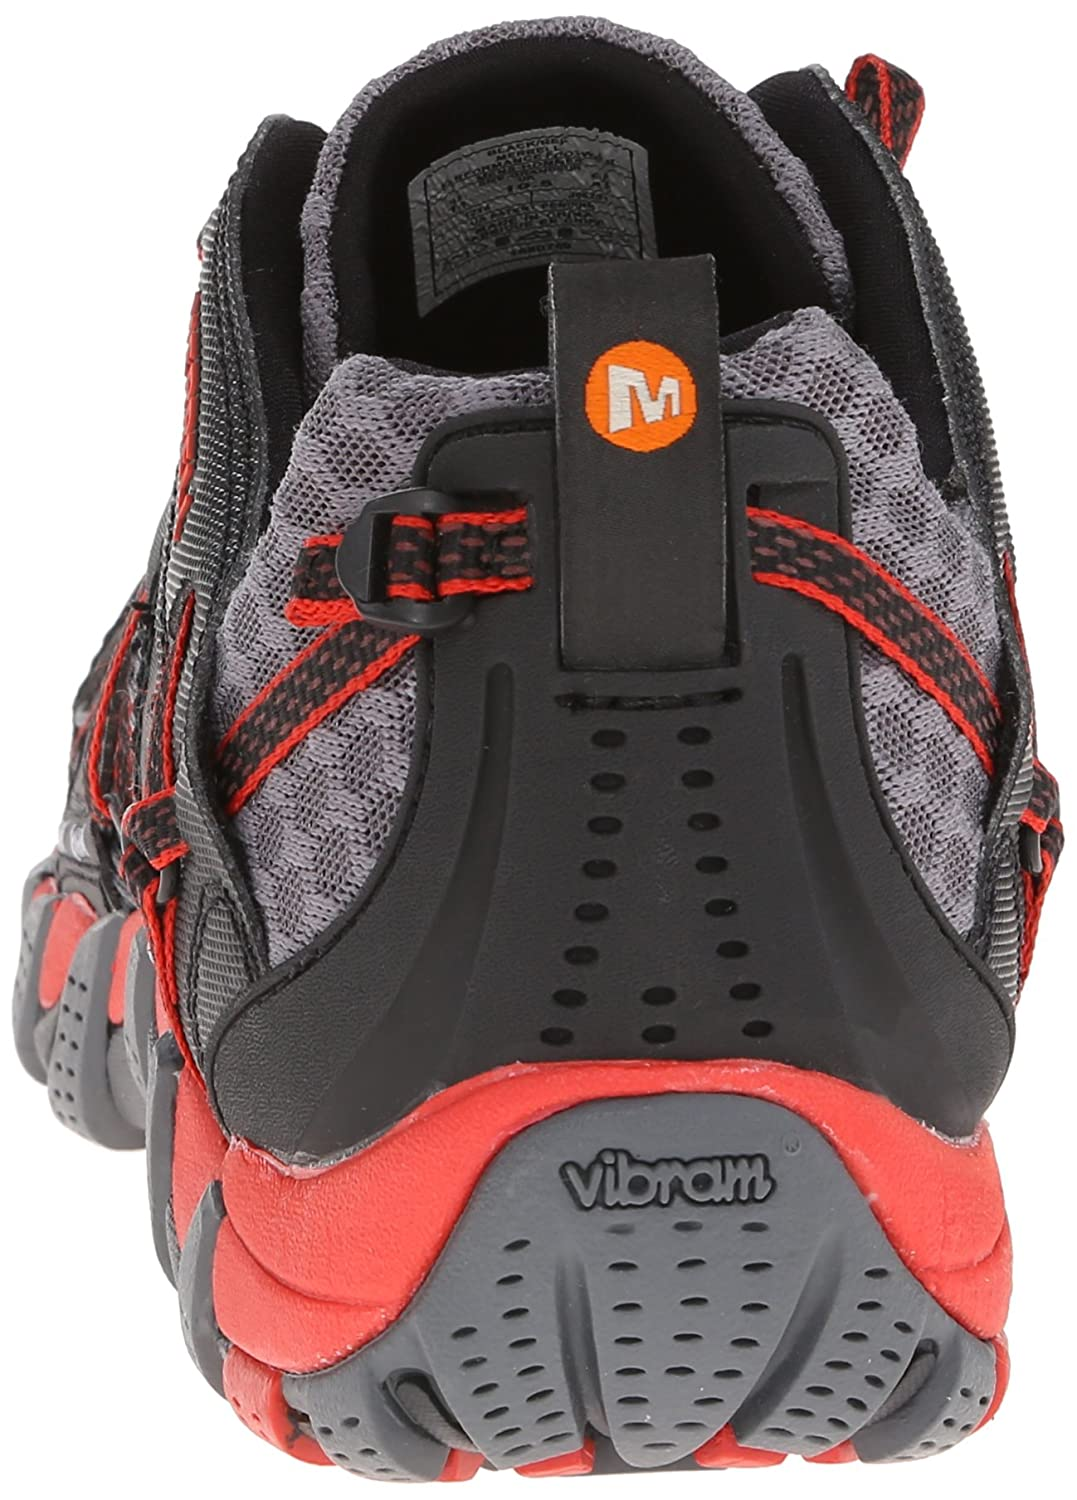 a9f2504b07a6c3 Merrell Men's Watepro Maipo Low Rise Hiking Shoes: Amazon.co.uk: Shoes &  Bags